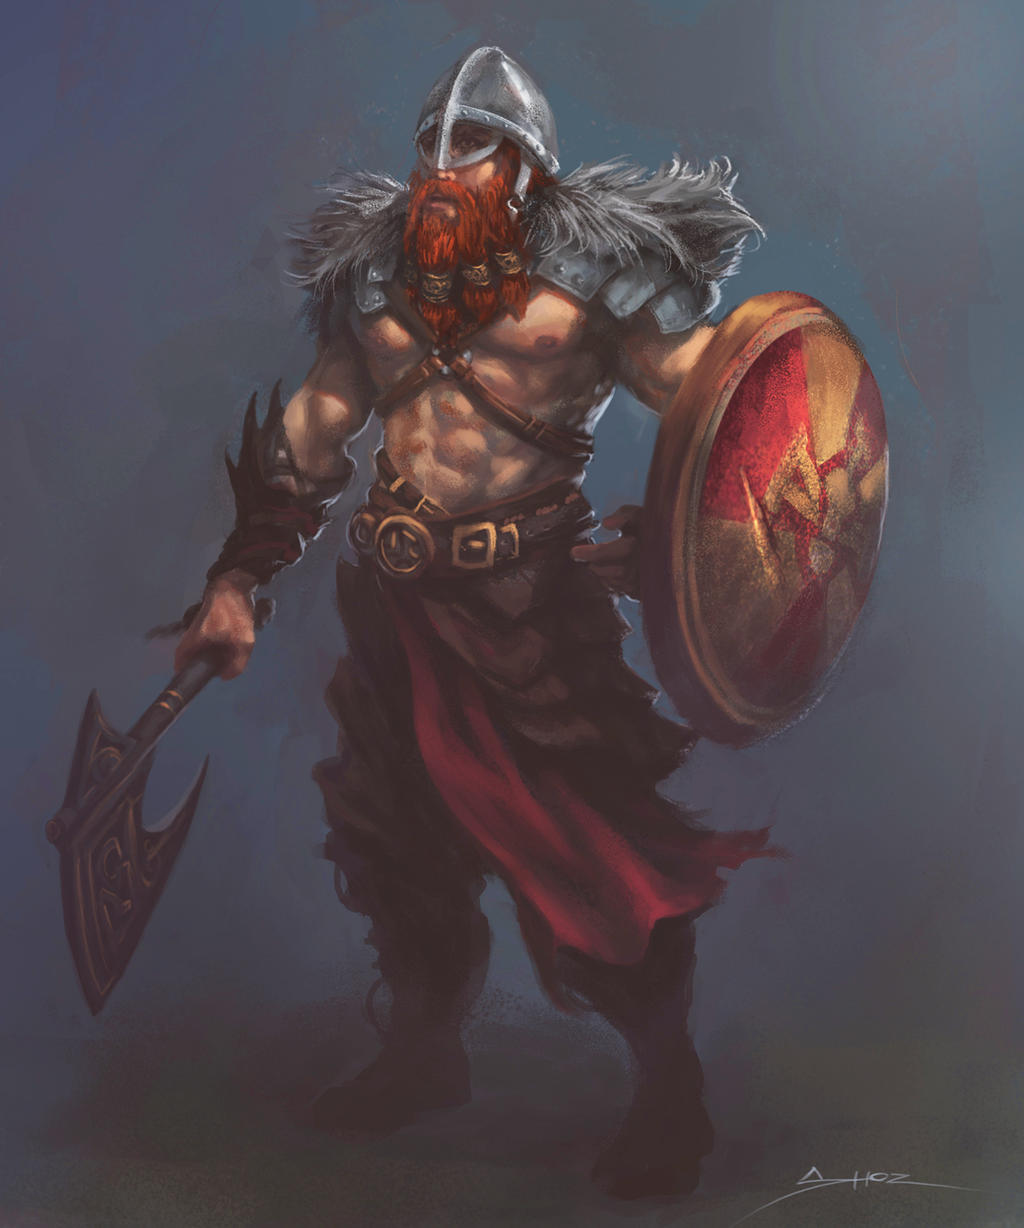 the_viking_by_shoz_art-d9tx4x9.jpg